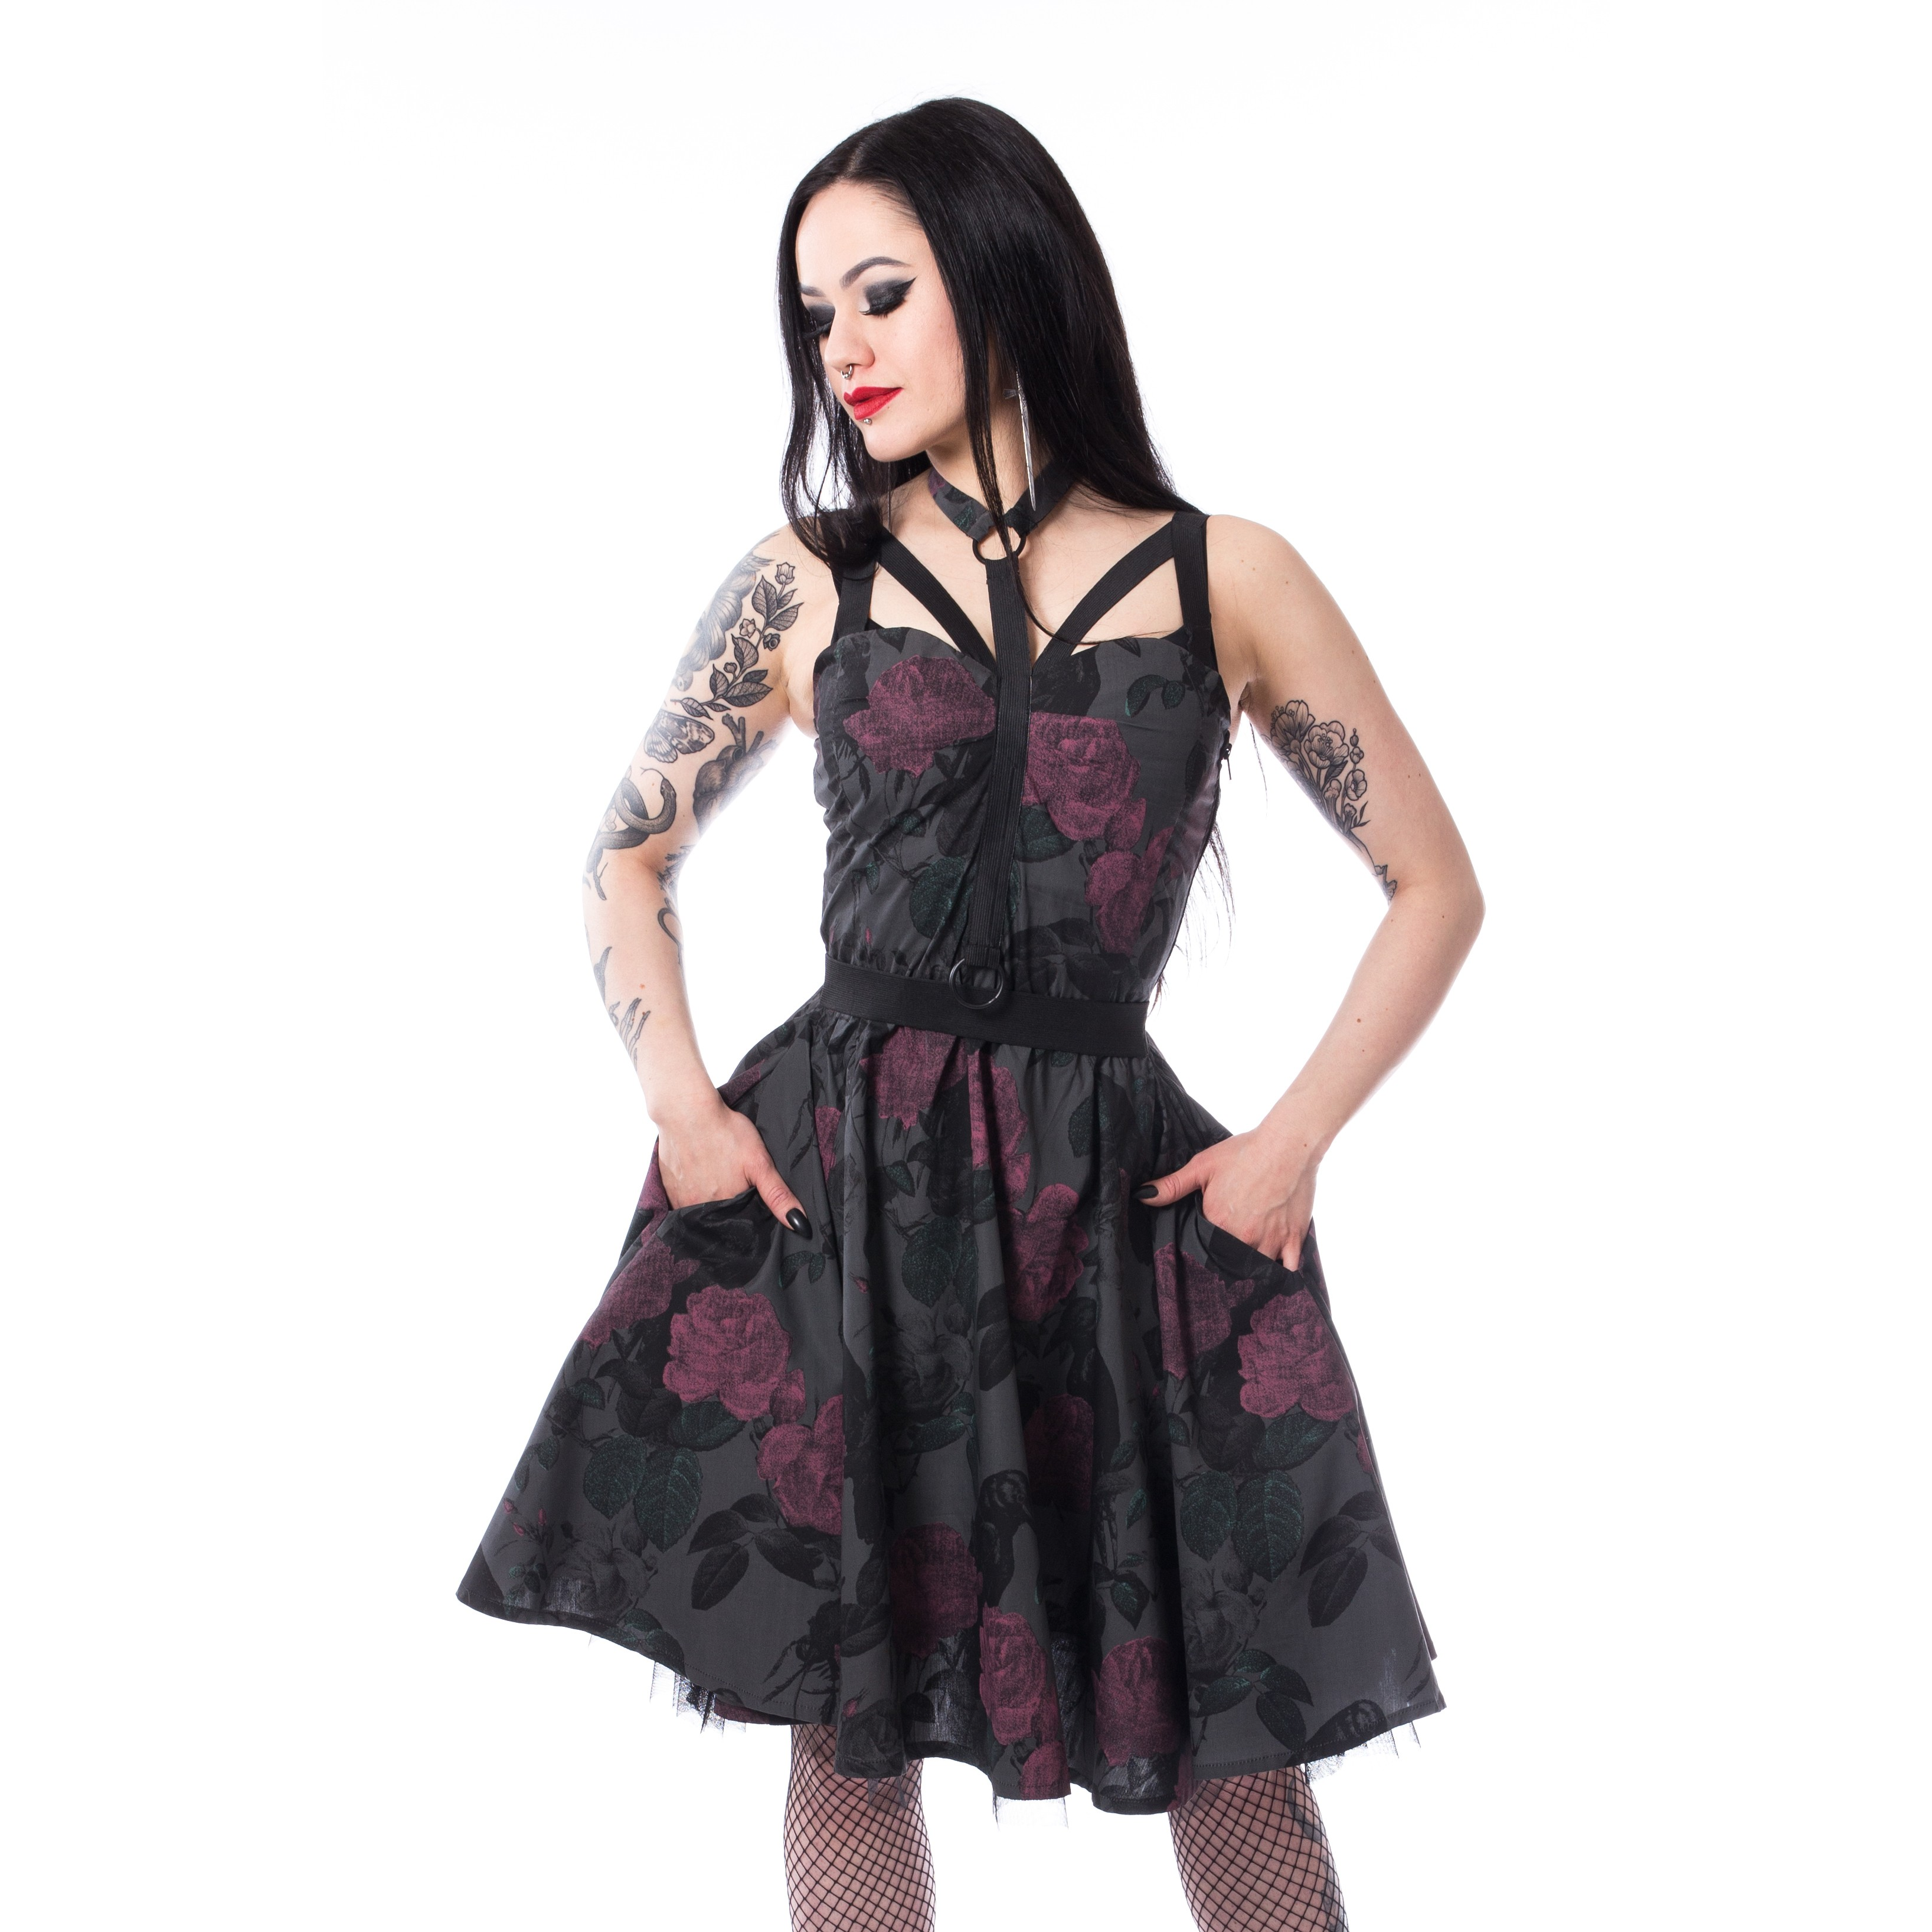 CHEMICAL BLACK - Dark Rose Dress Ladies Black *NEW IN-a*